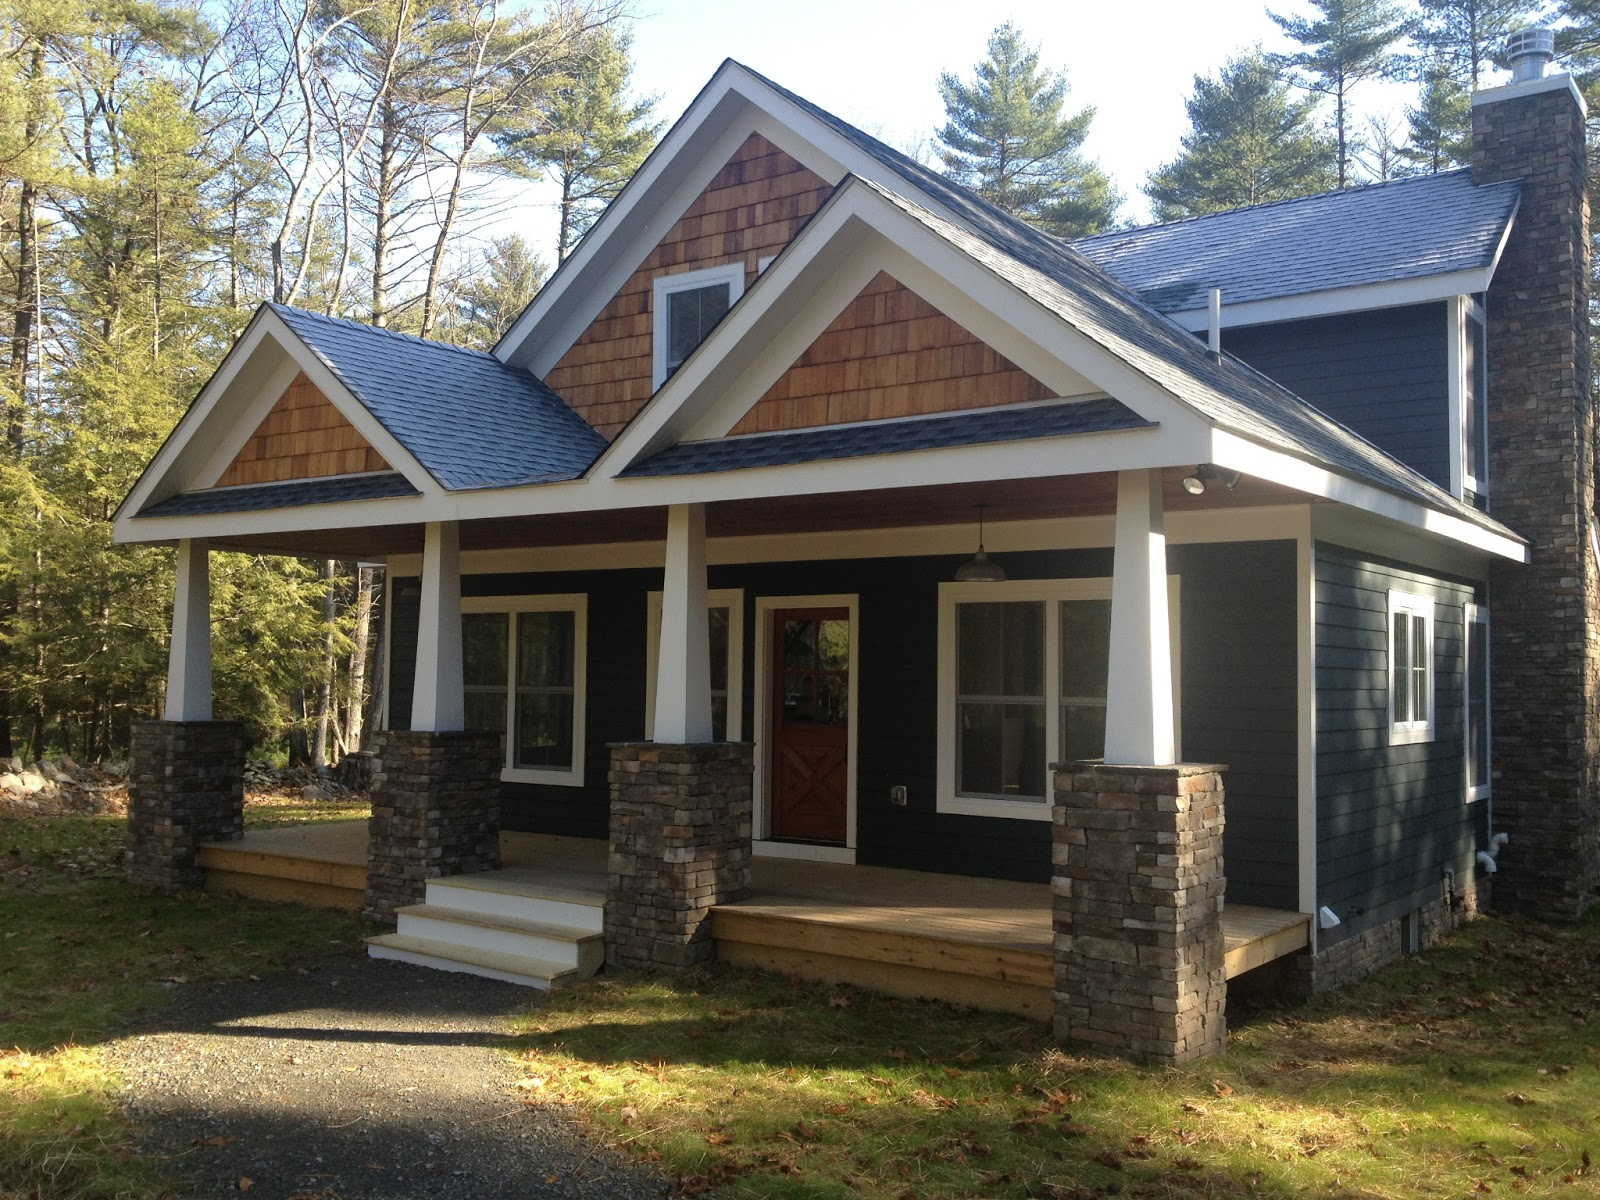 schoolhouse vacation idyllic rental house escape for to an airbnb school cabins this cabin catskills upstate